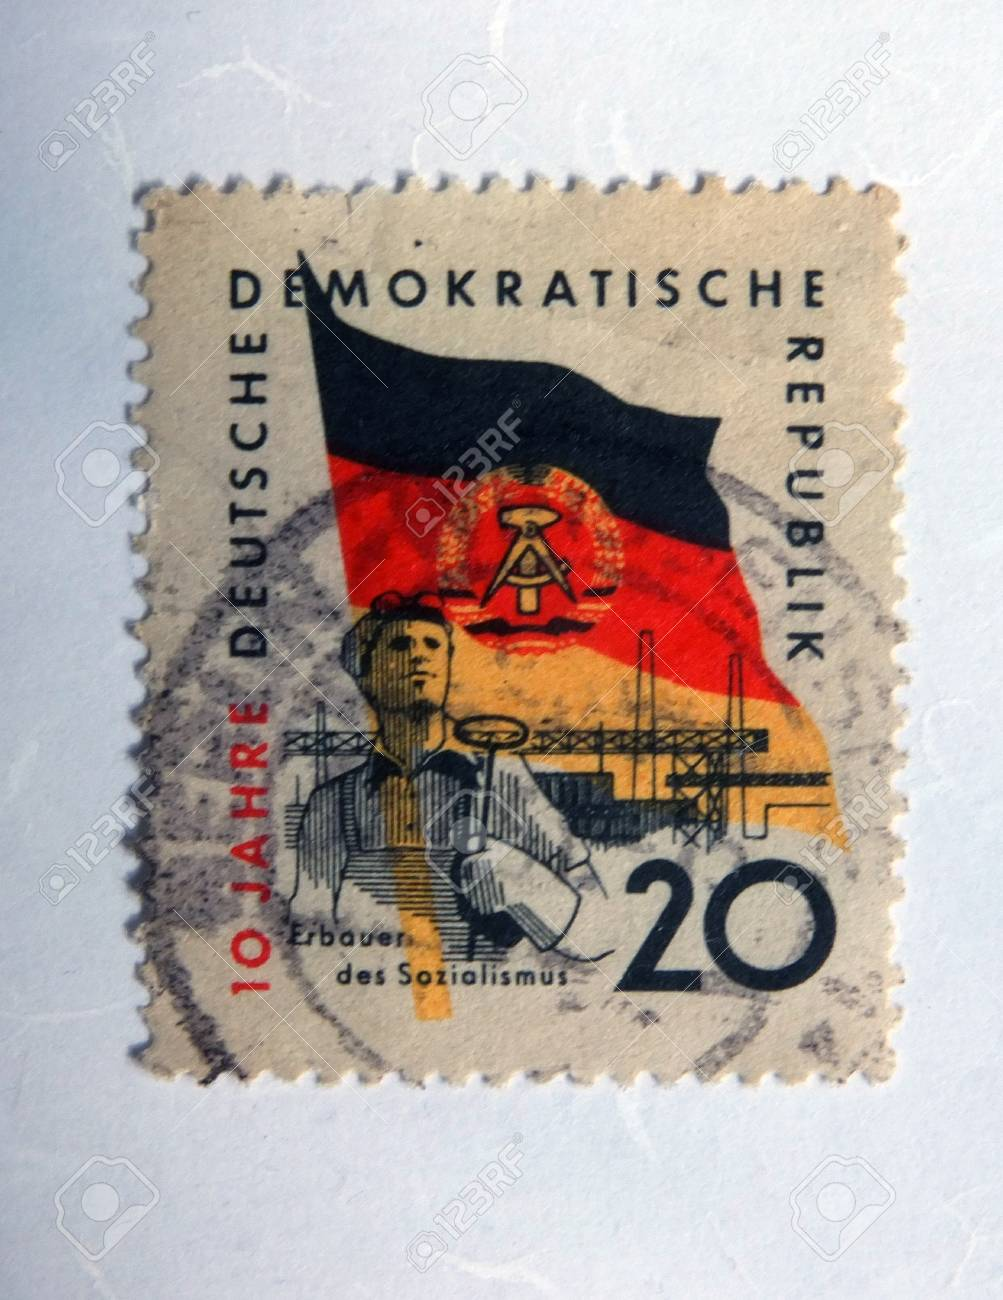 Leeds, England: An old east german postage stamp with an image